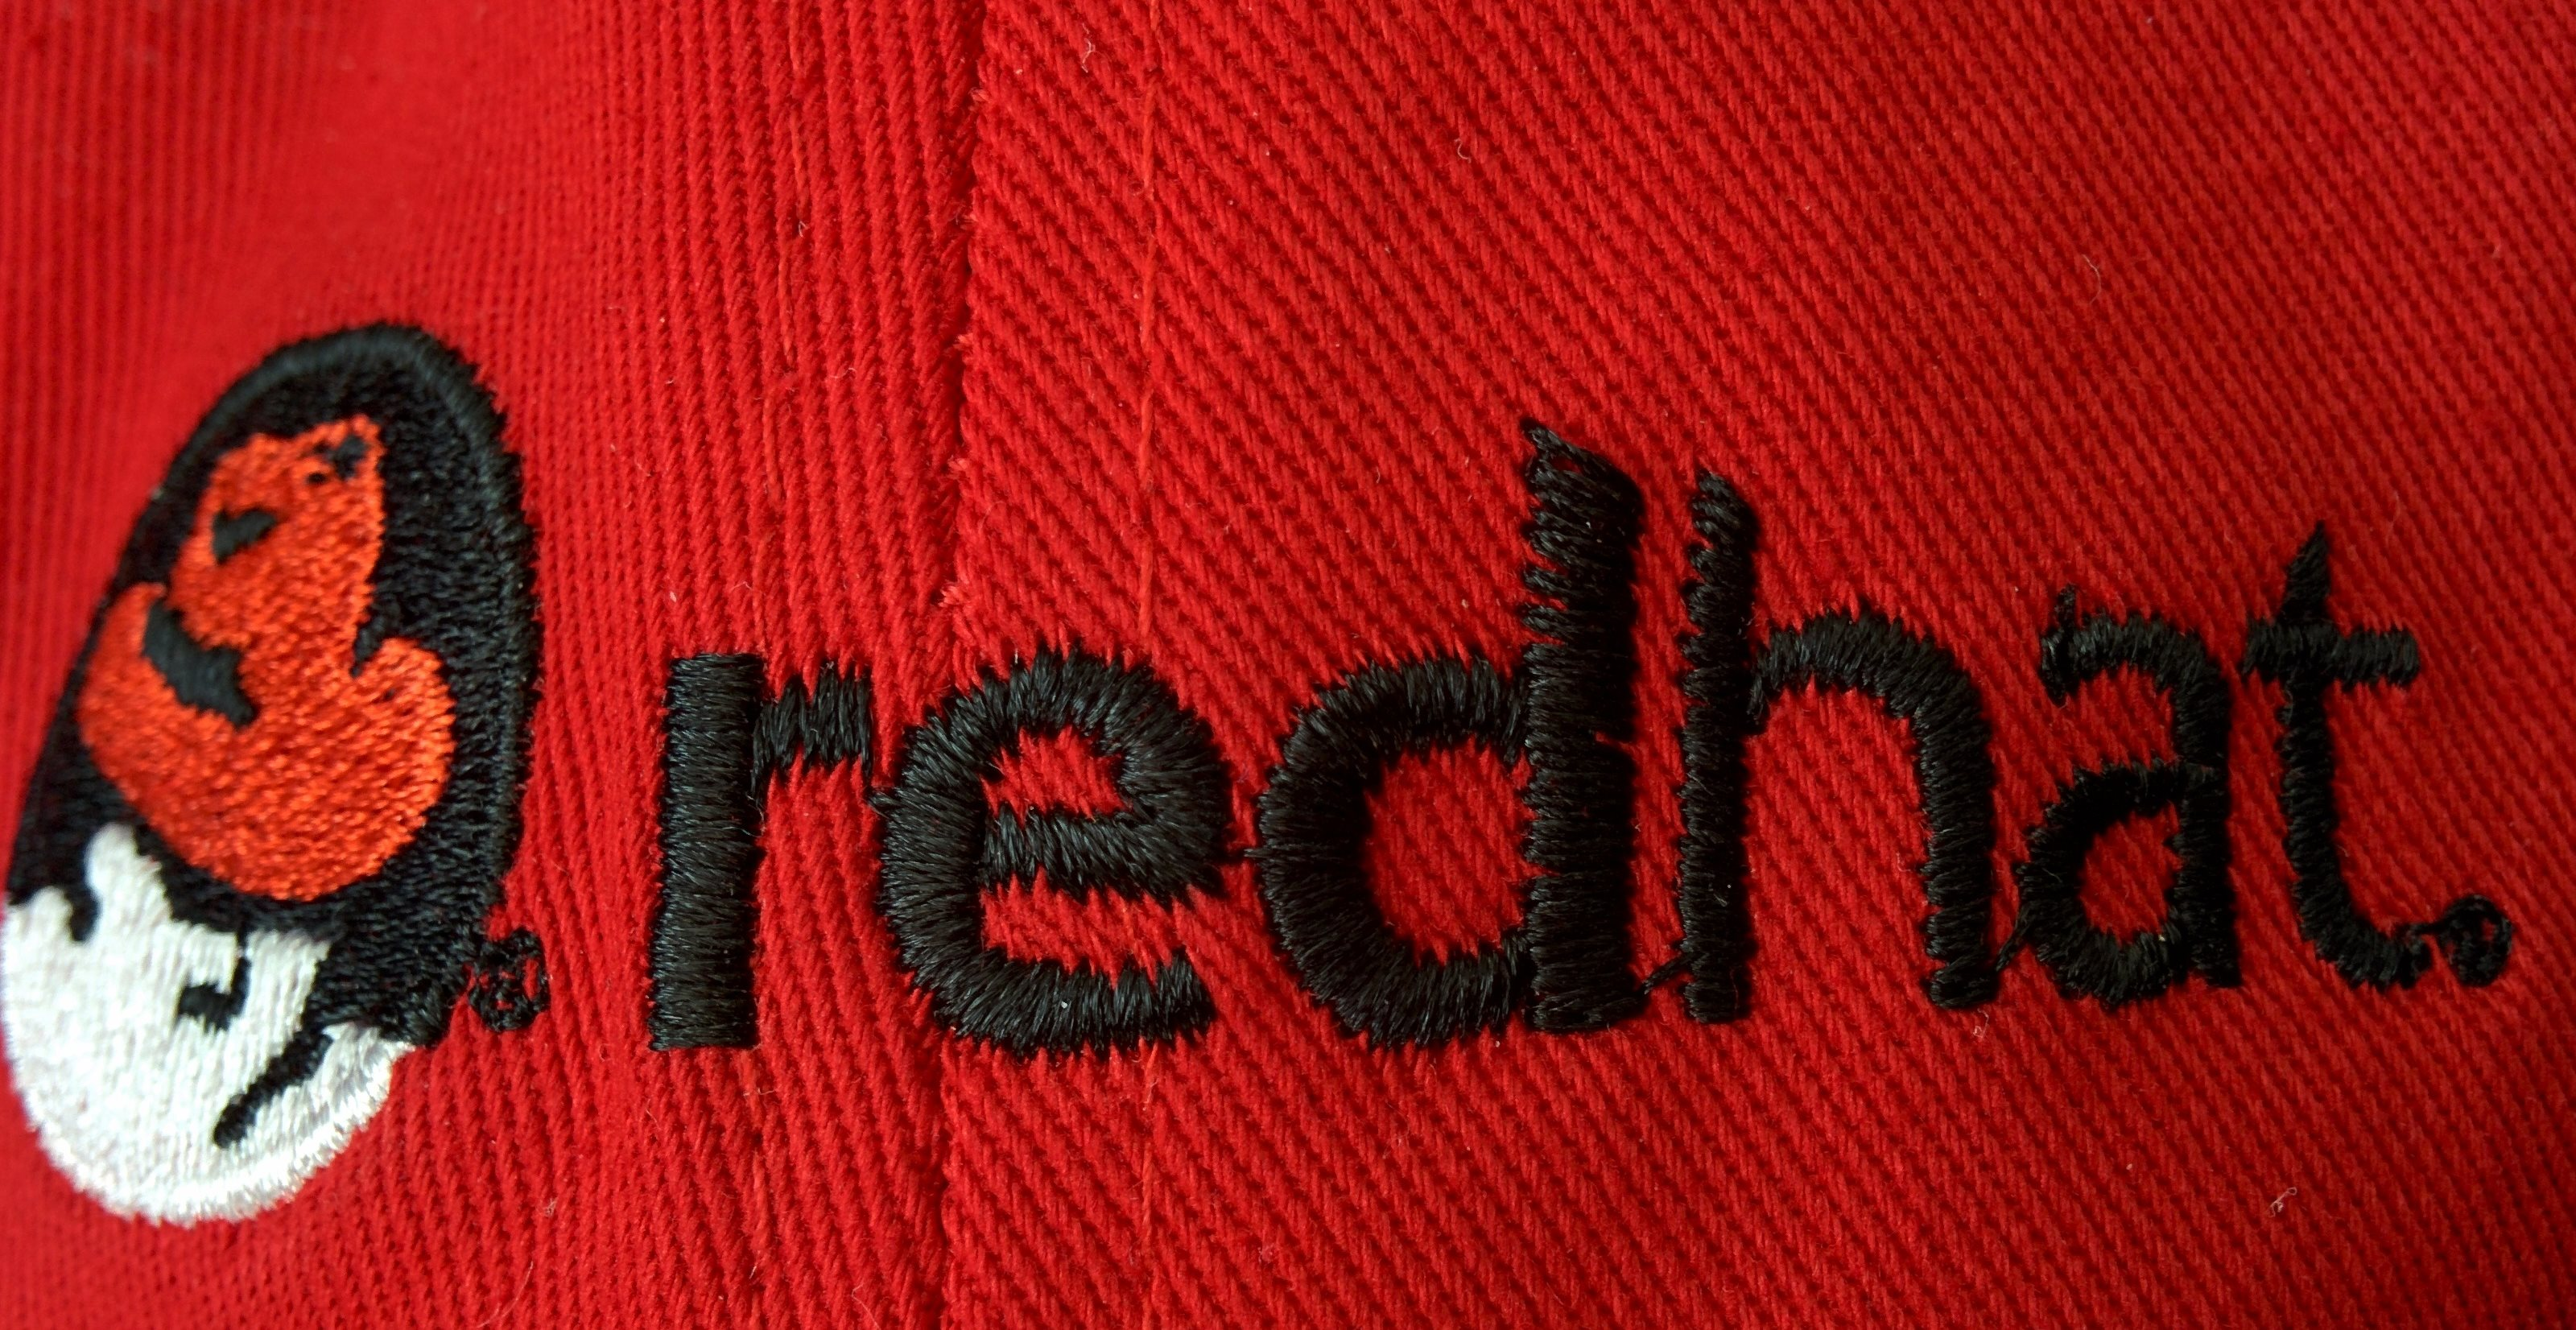 BMO Capital Markets Reiterates Hold Rating for Red Hat (RHT)